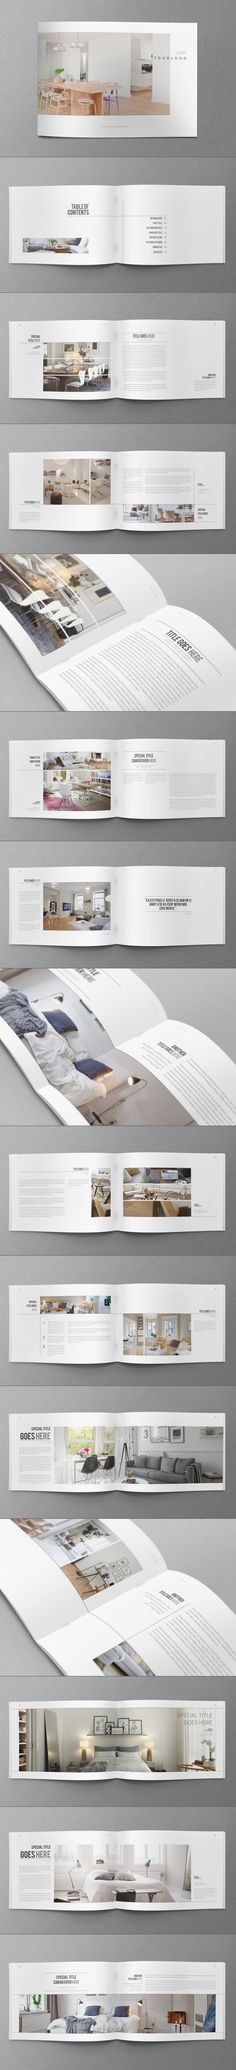 Minimal Interior Design Brochure. Download here: http://graphicriver.net/item/minimal-interior-design-brochure/8925678?ref=abradesign #design #brochure